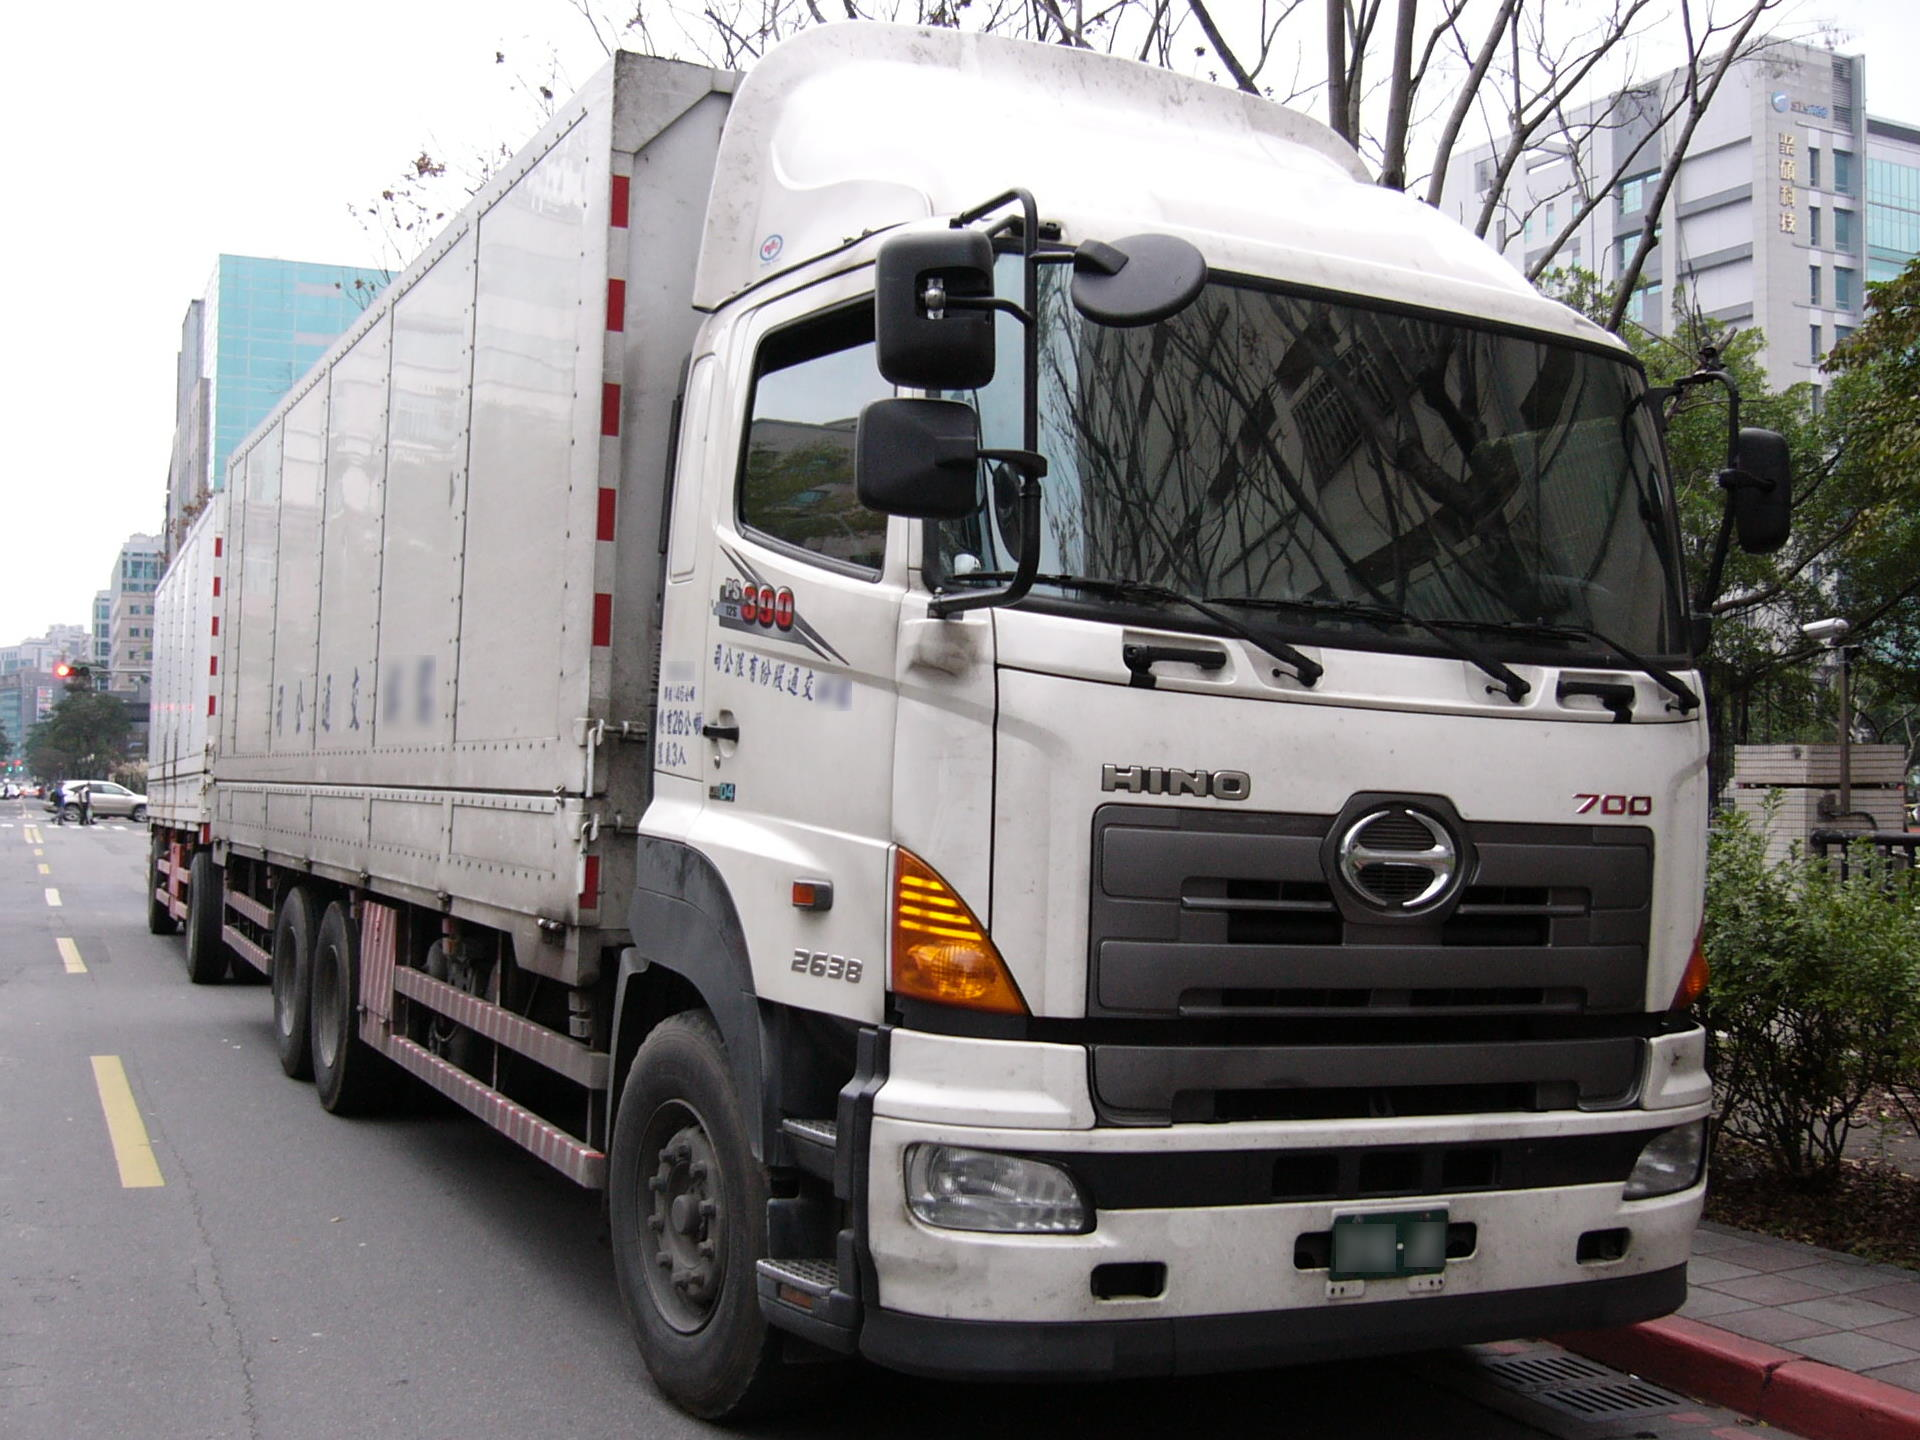 File:Hino 700 2638 truck in Taiwan.jpg - Wikimedia Commons